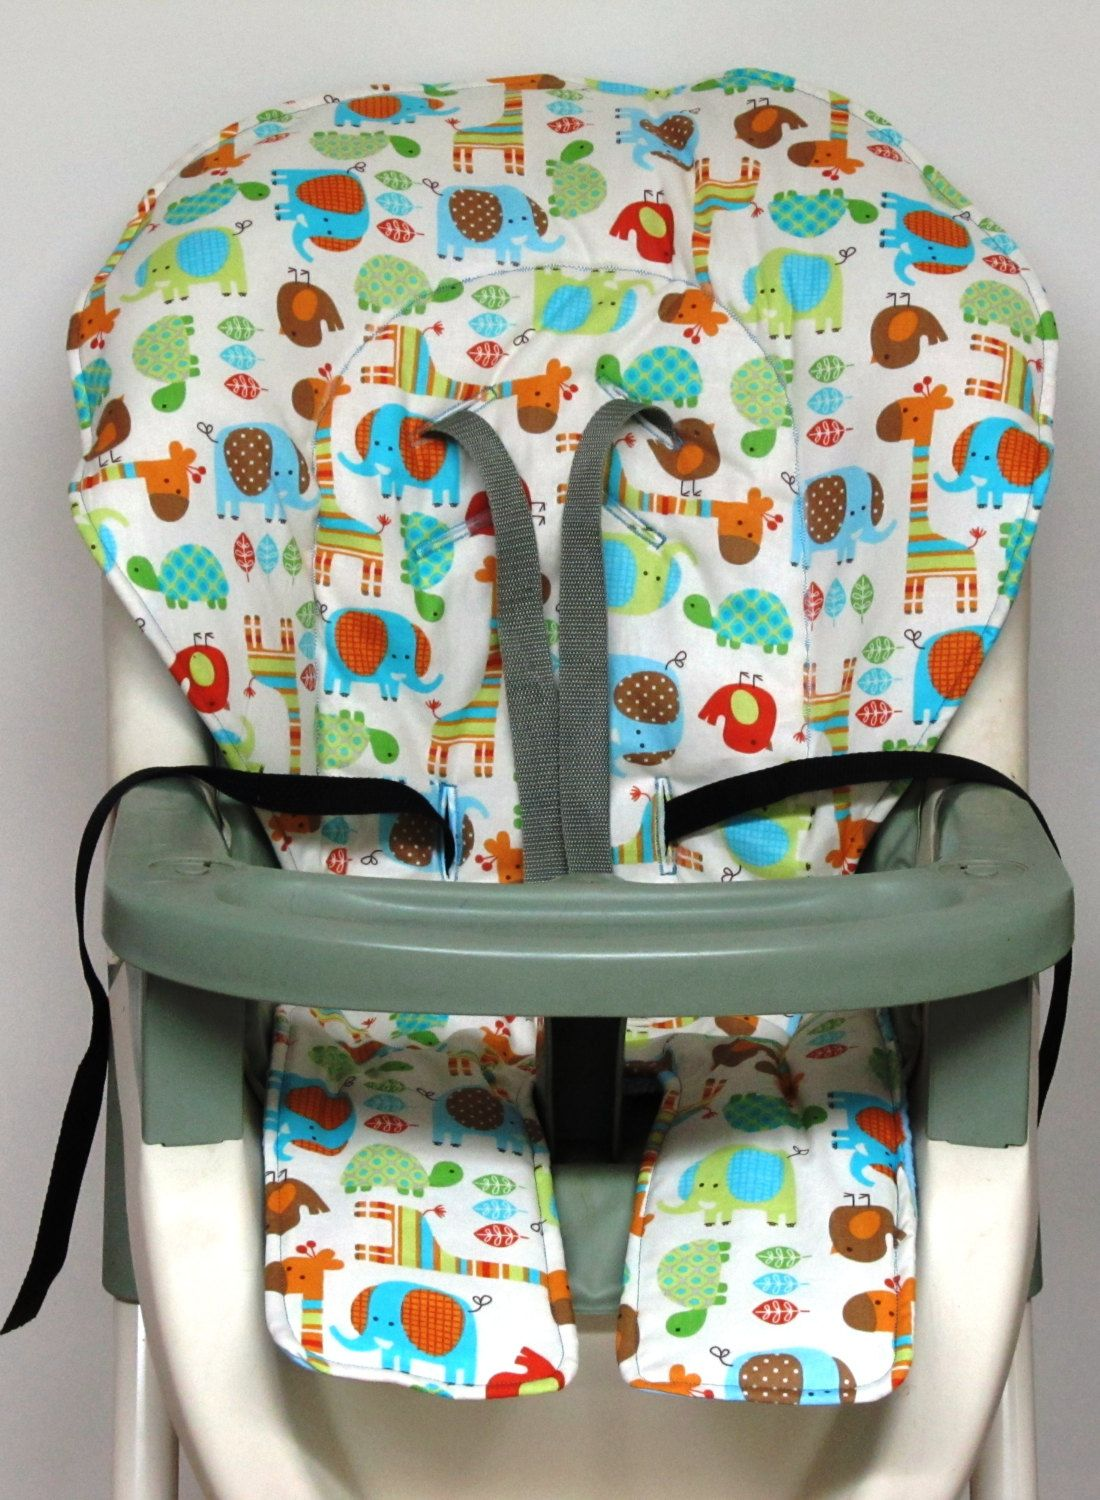 Graco High Chair Cover Replacement Walnut Eames Pad Jungle Fun By Sewingsilly On Etsy